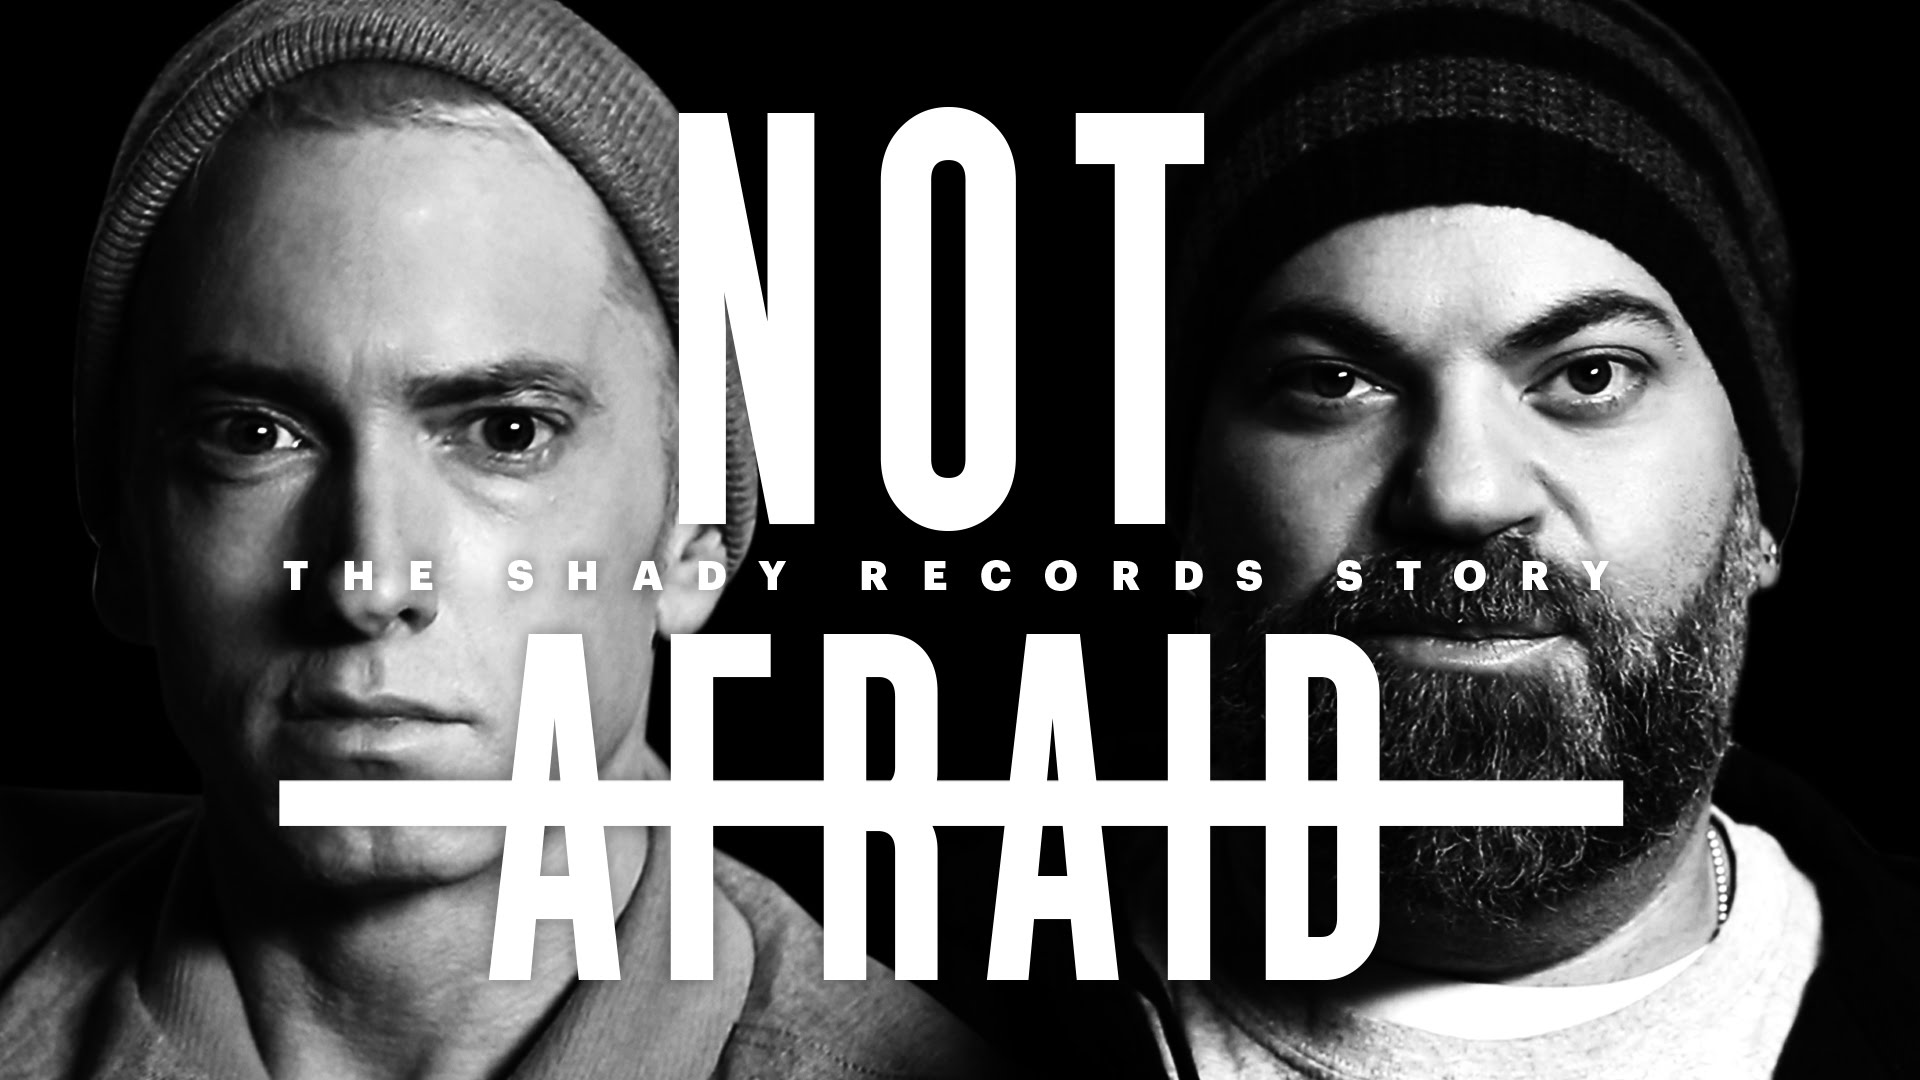 not afraid the shady records story traduzione italiano, eminem documentario, not afraid the shady records story, eminem not afraid, eminem, the shady records story